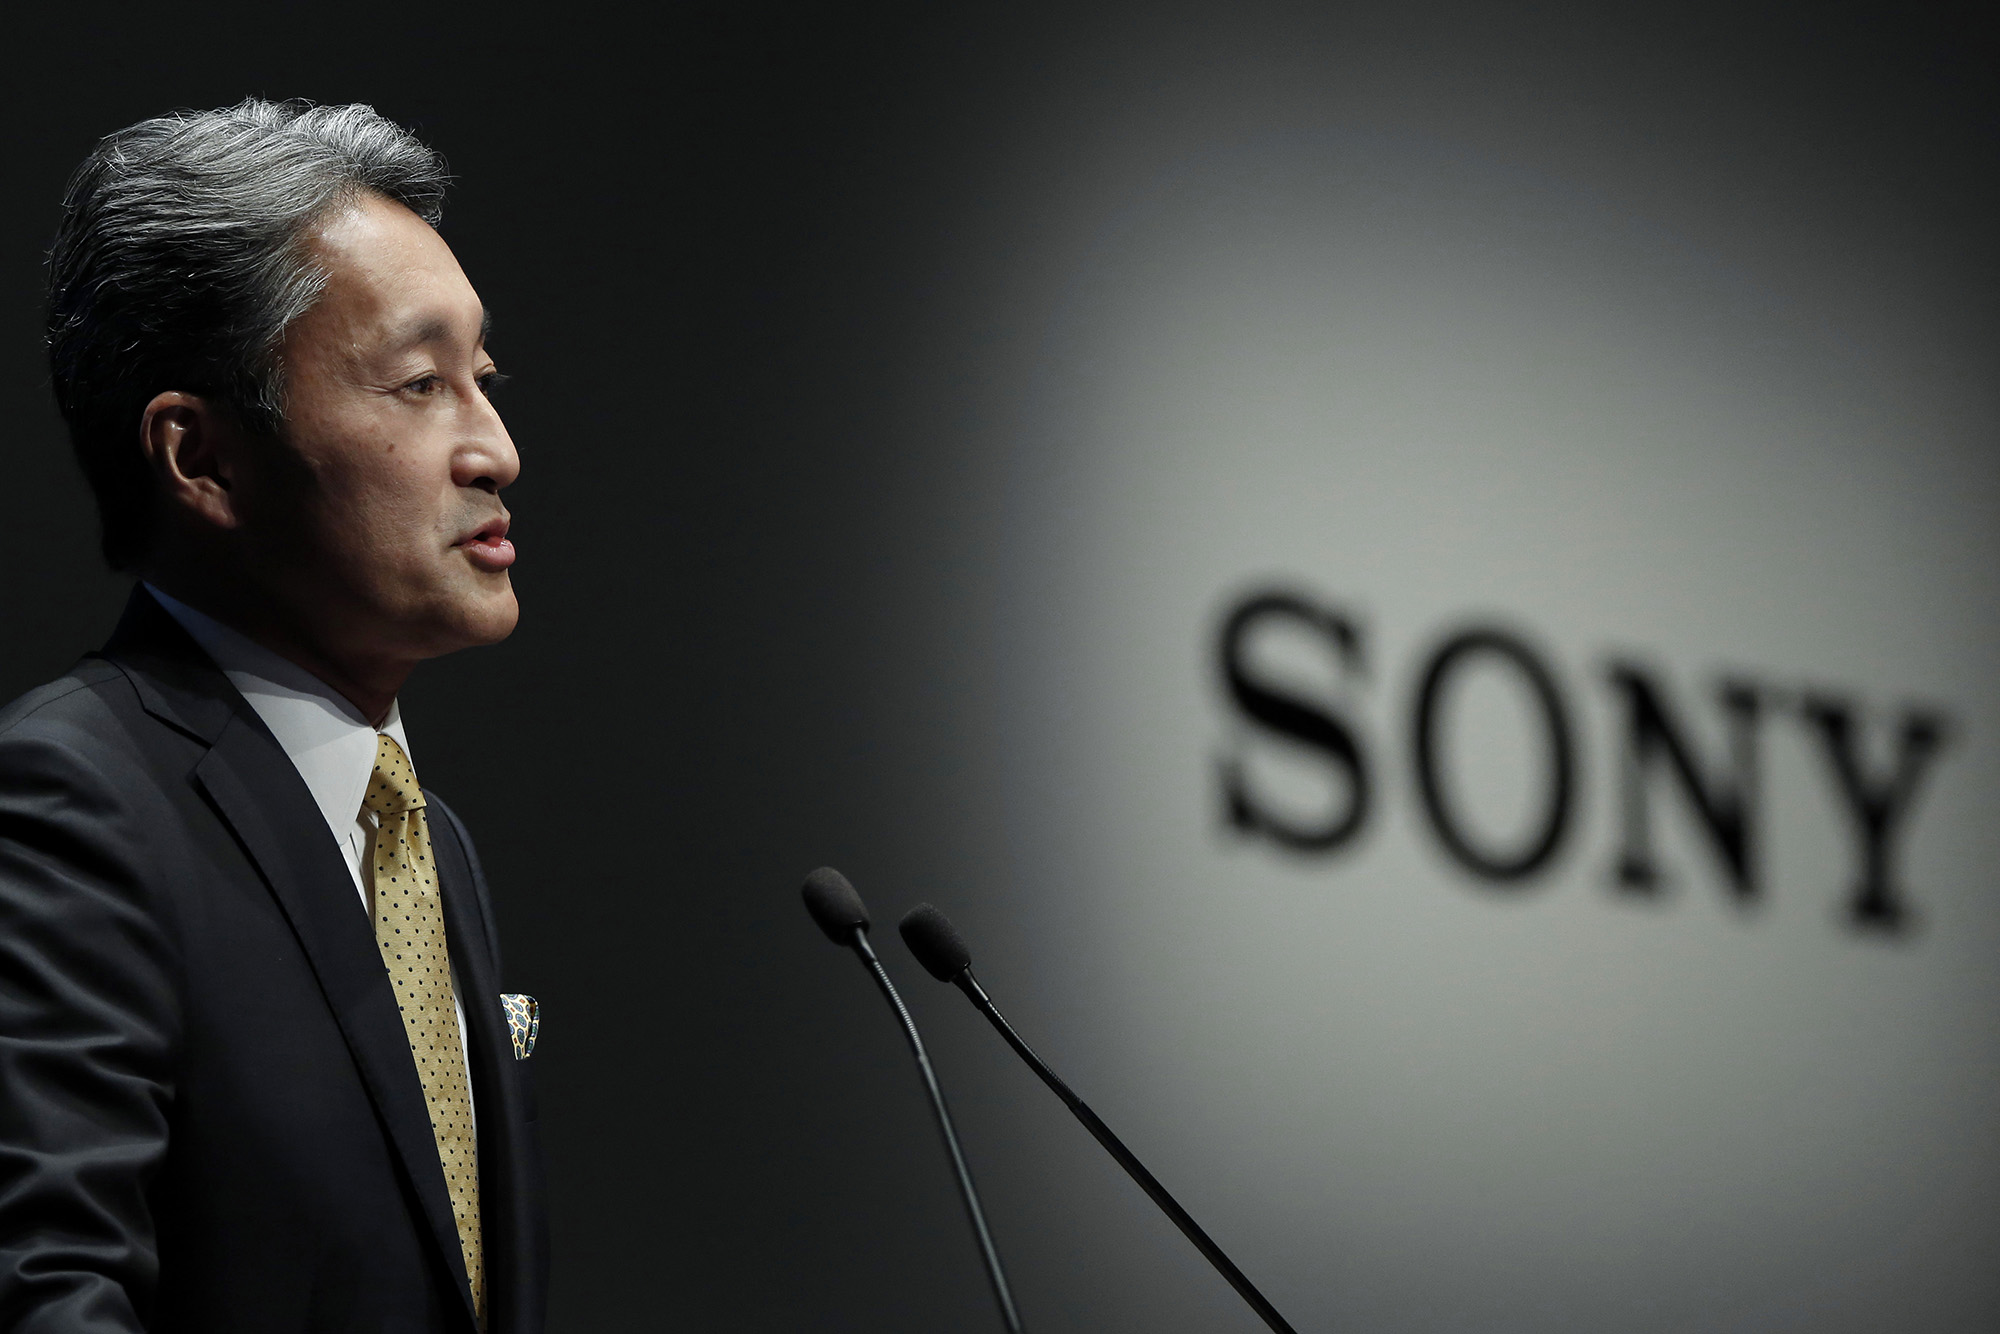 Kazuo Hirai, president and chief executive officer of Sony Corp., speaks during a news conference in Tokyo, Japan, on Wednesday, Feb. 18, 2015. Sony forecast a surge in operating earnings by fiscal 2017 as Hirai drives the company's turnaround with games, image sensors and entertainment. Photographer: Kiyoshi Ota/Bloomberg *** Local Caption *** Kazuo Hirai